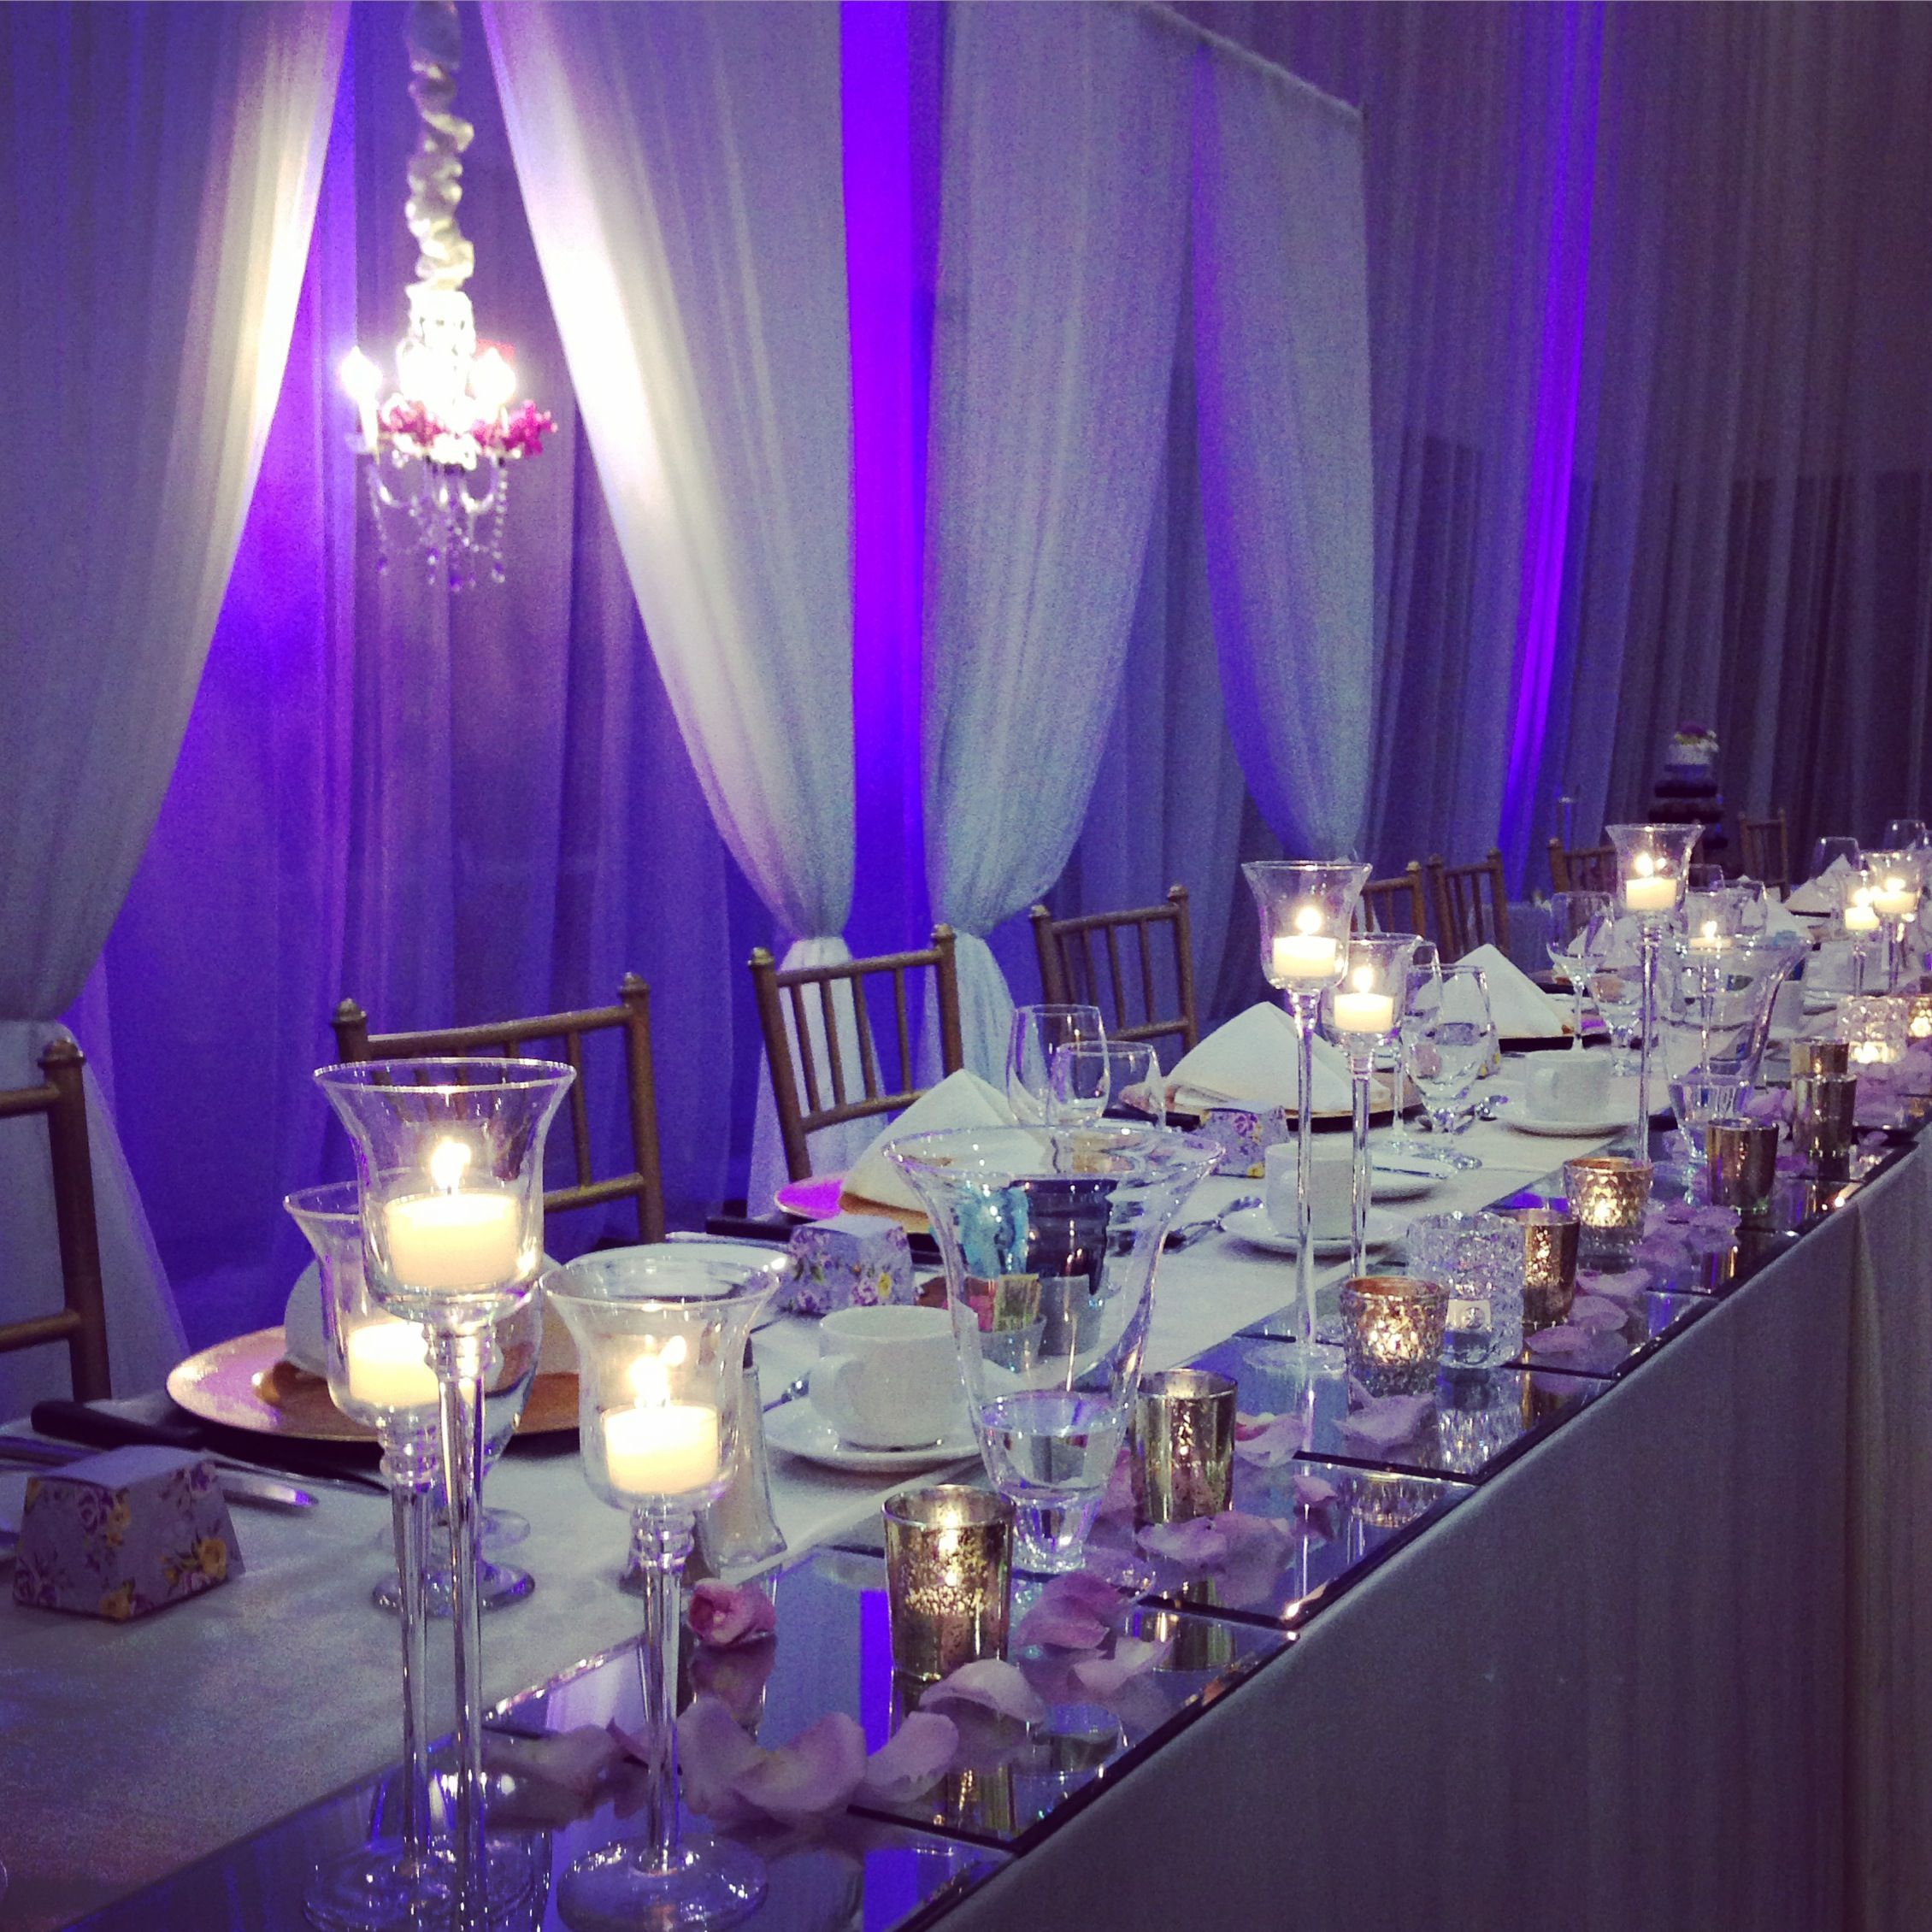 Purple And White Wedding Candles Mirror Rose Petals Backdrop